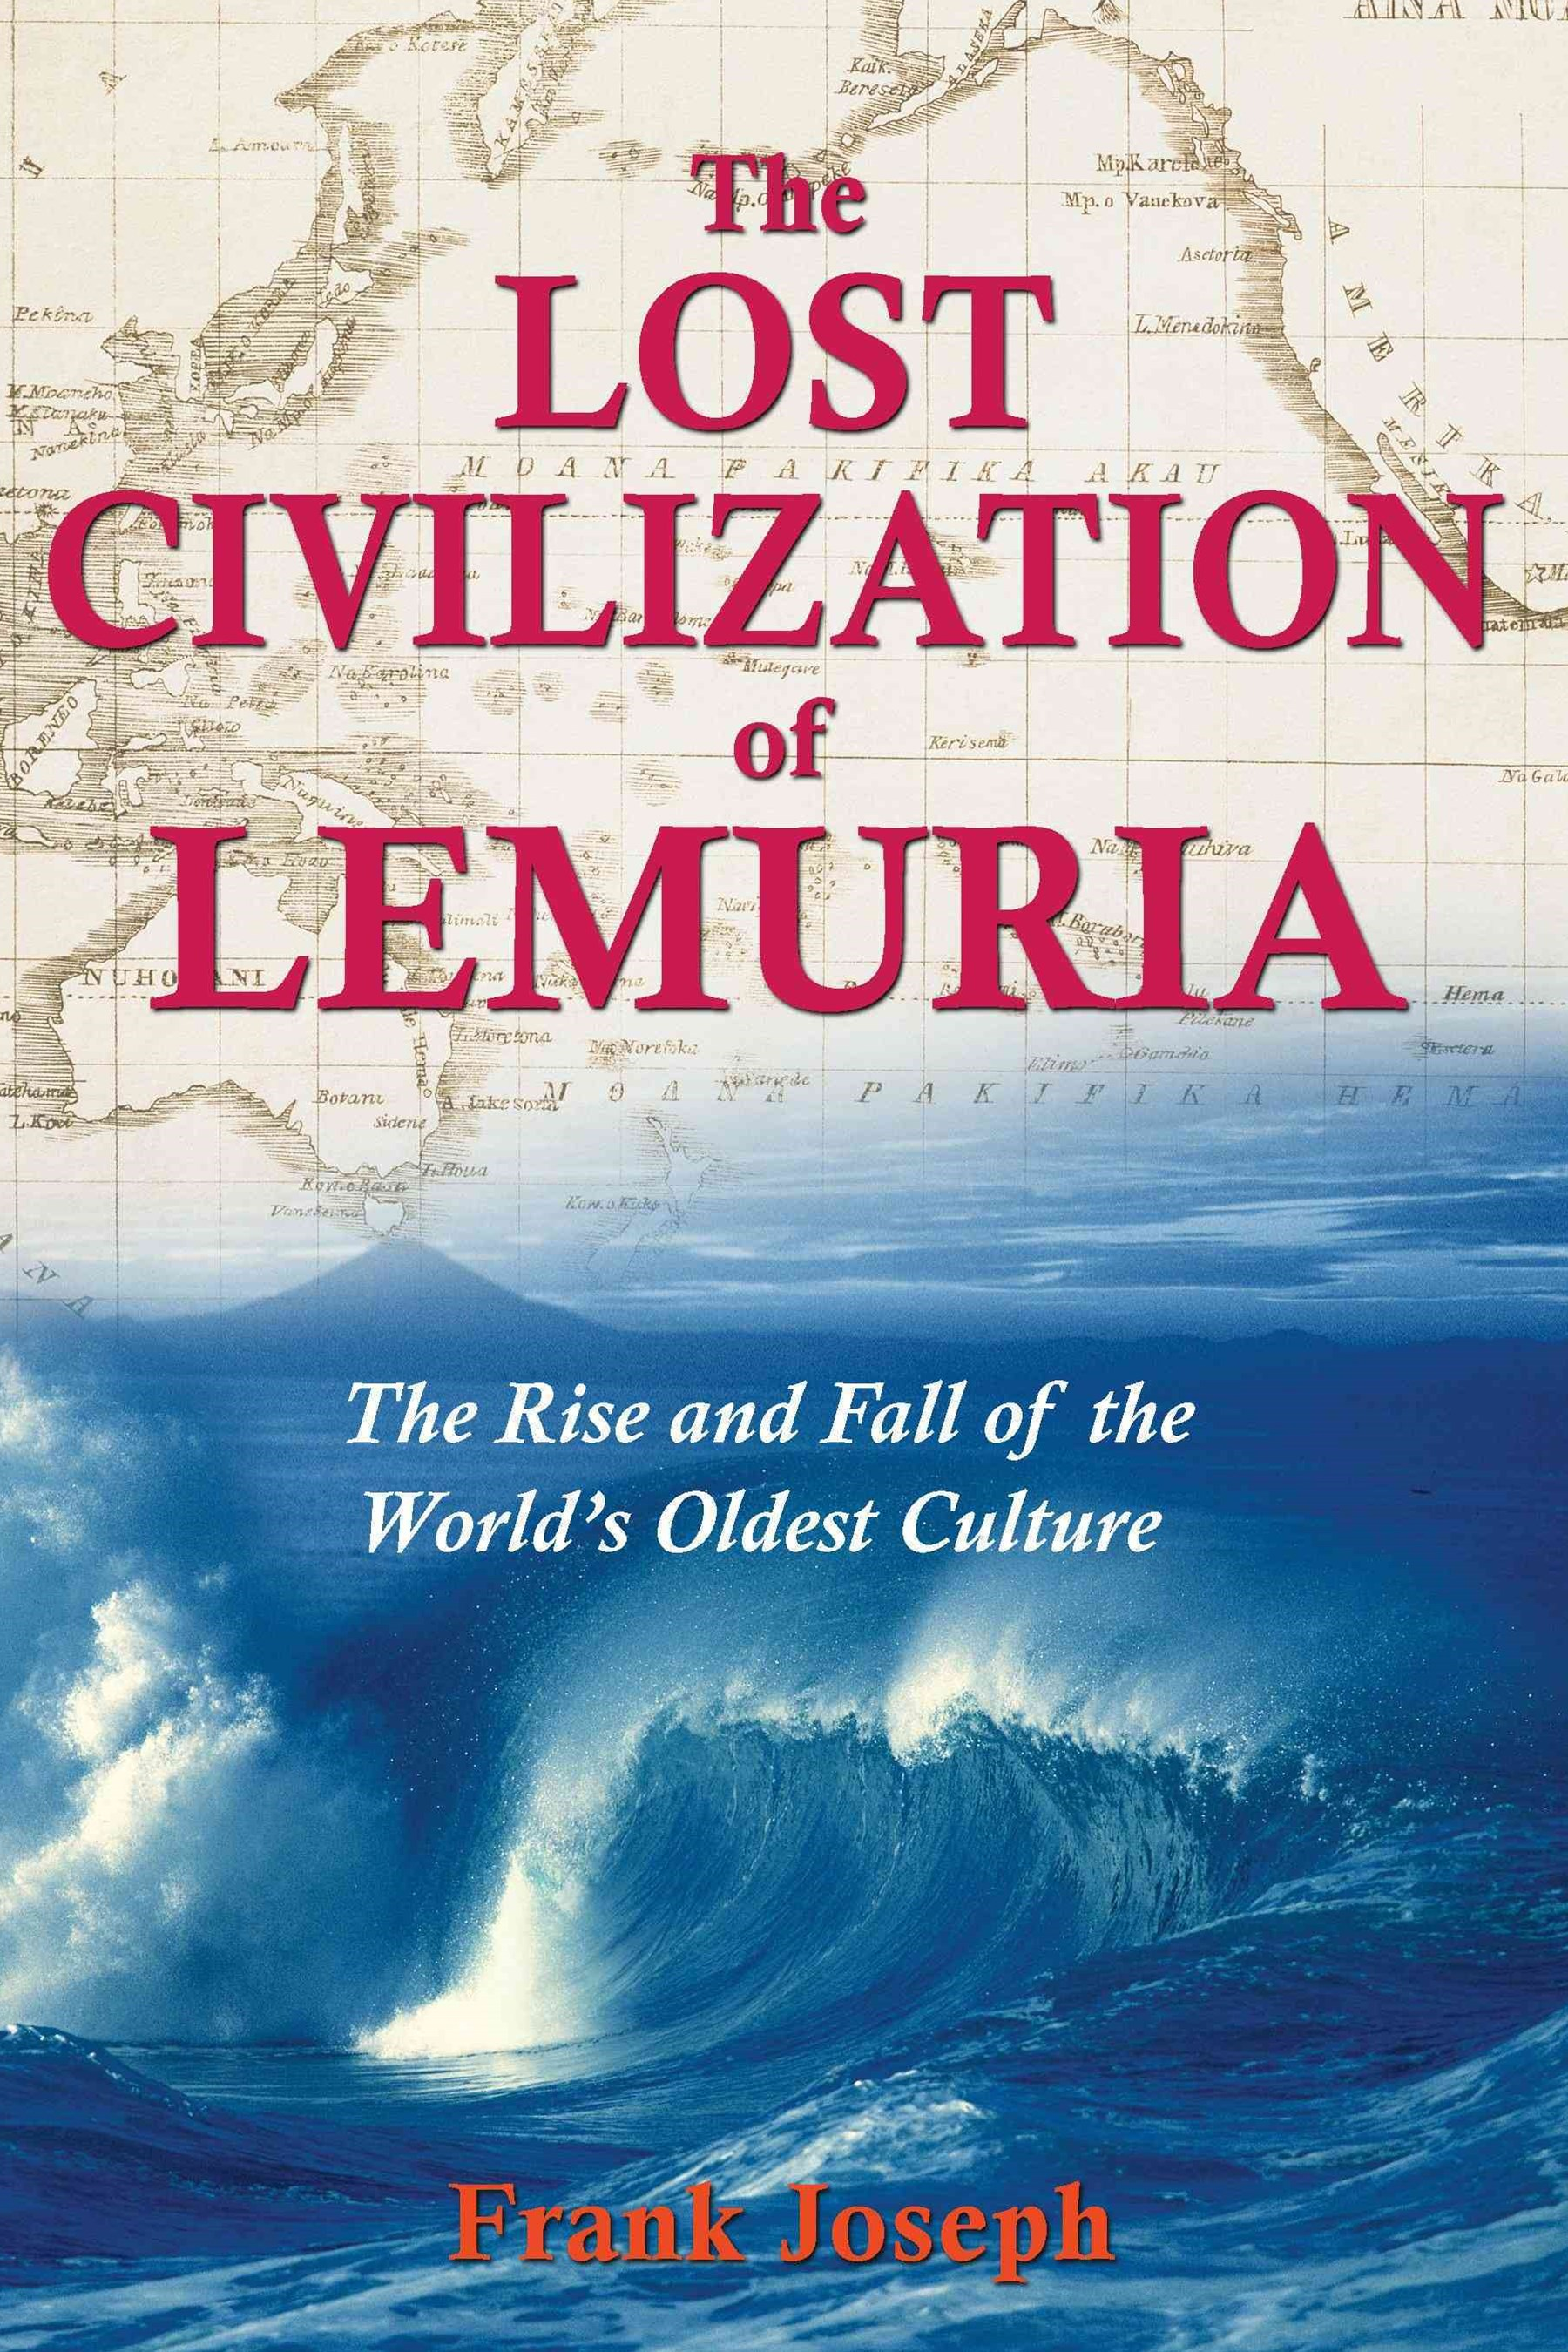 Lost Civilisation of Lemuria